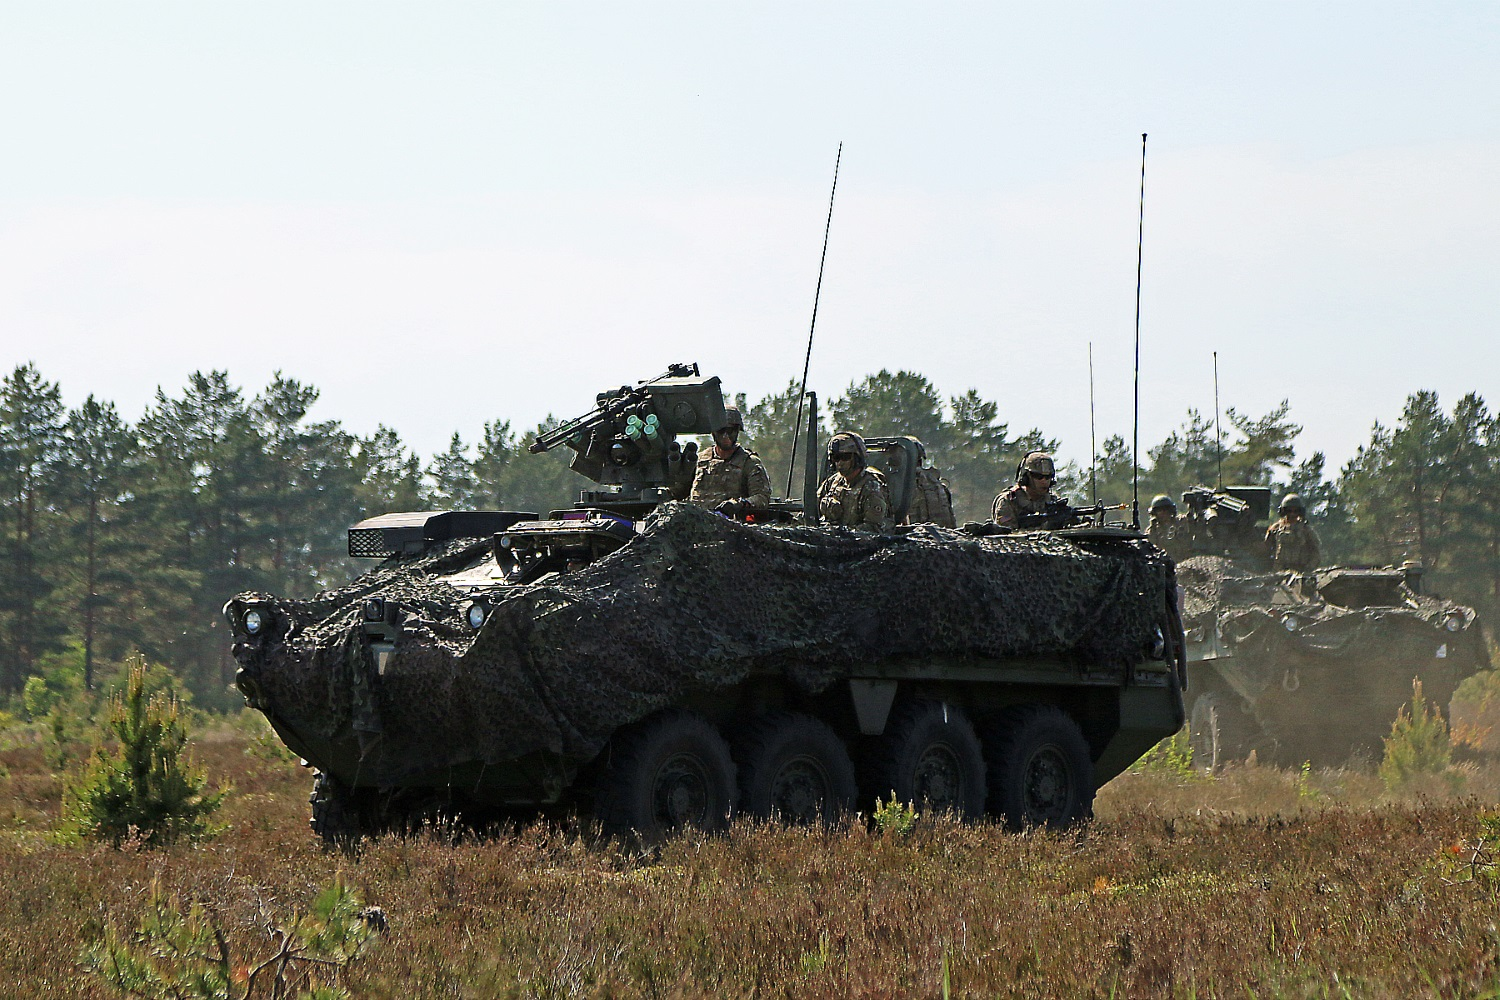 US Army commander calls for speedier movement for NATO forces in EU